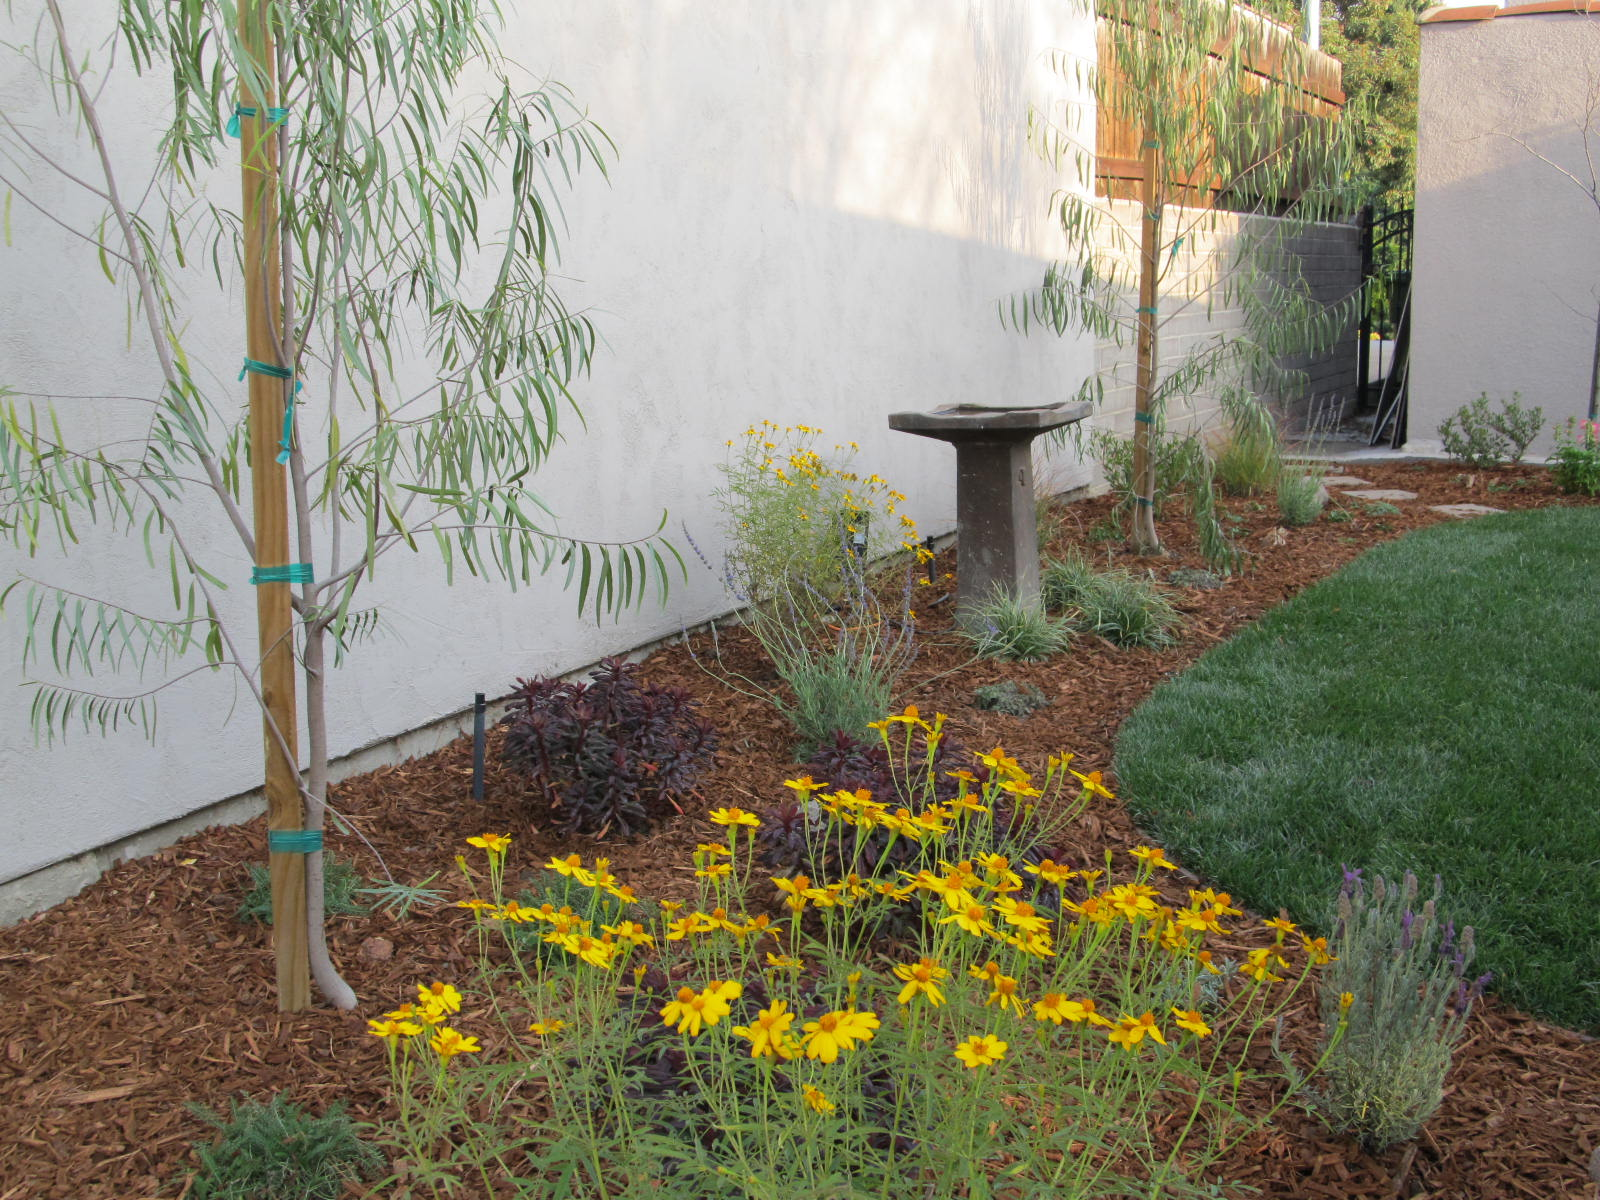 Fairy Yardmother Landscape Design: Backyard Makeover on a ... on Patio Makeovers On A Budget id=22255